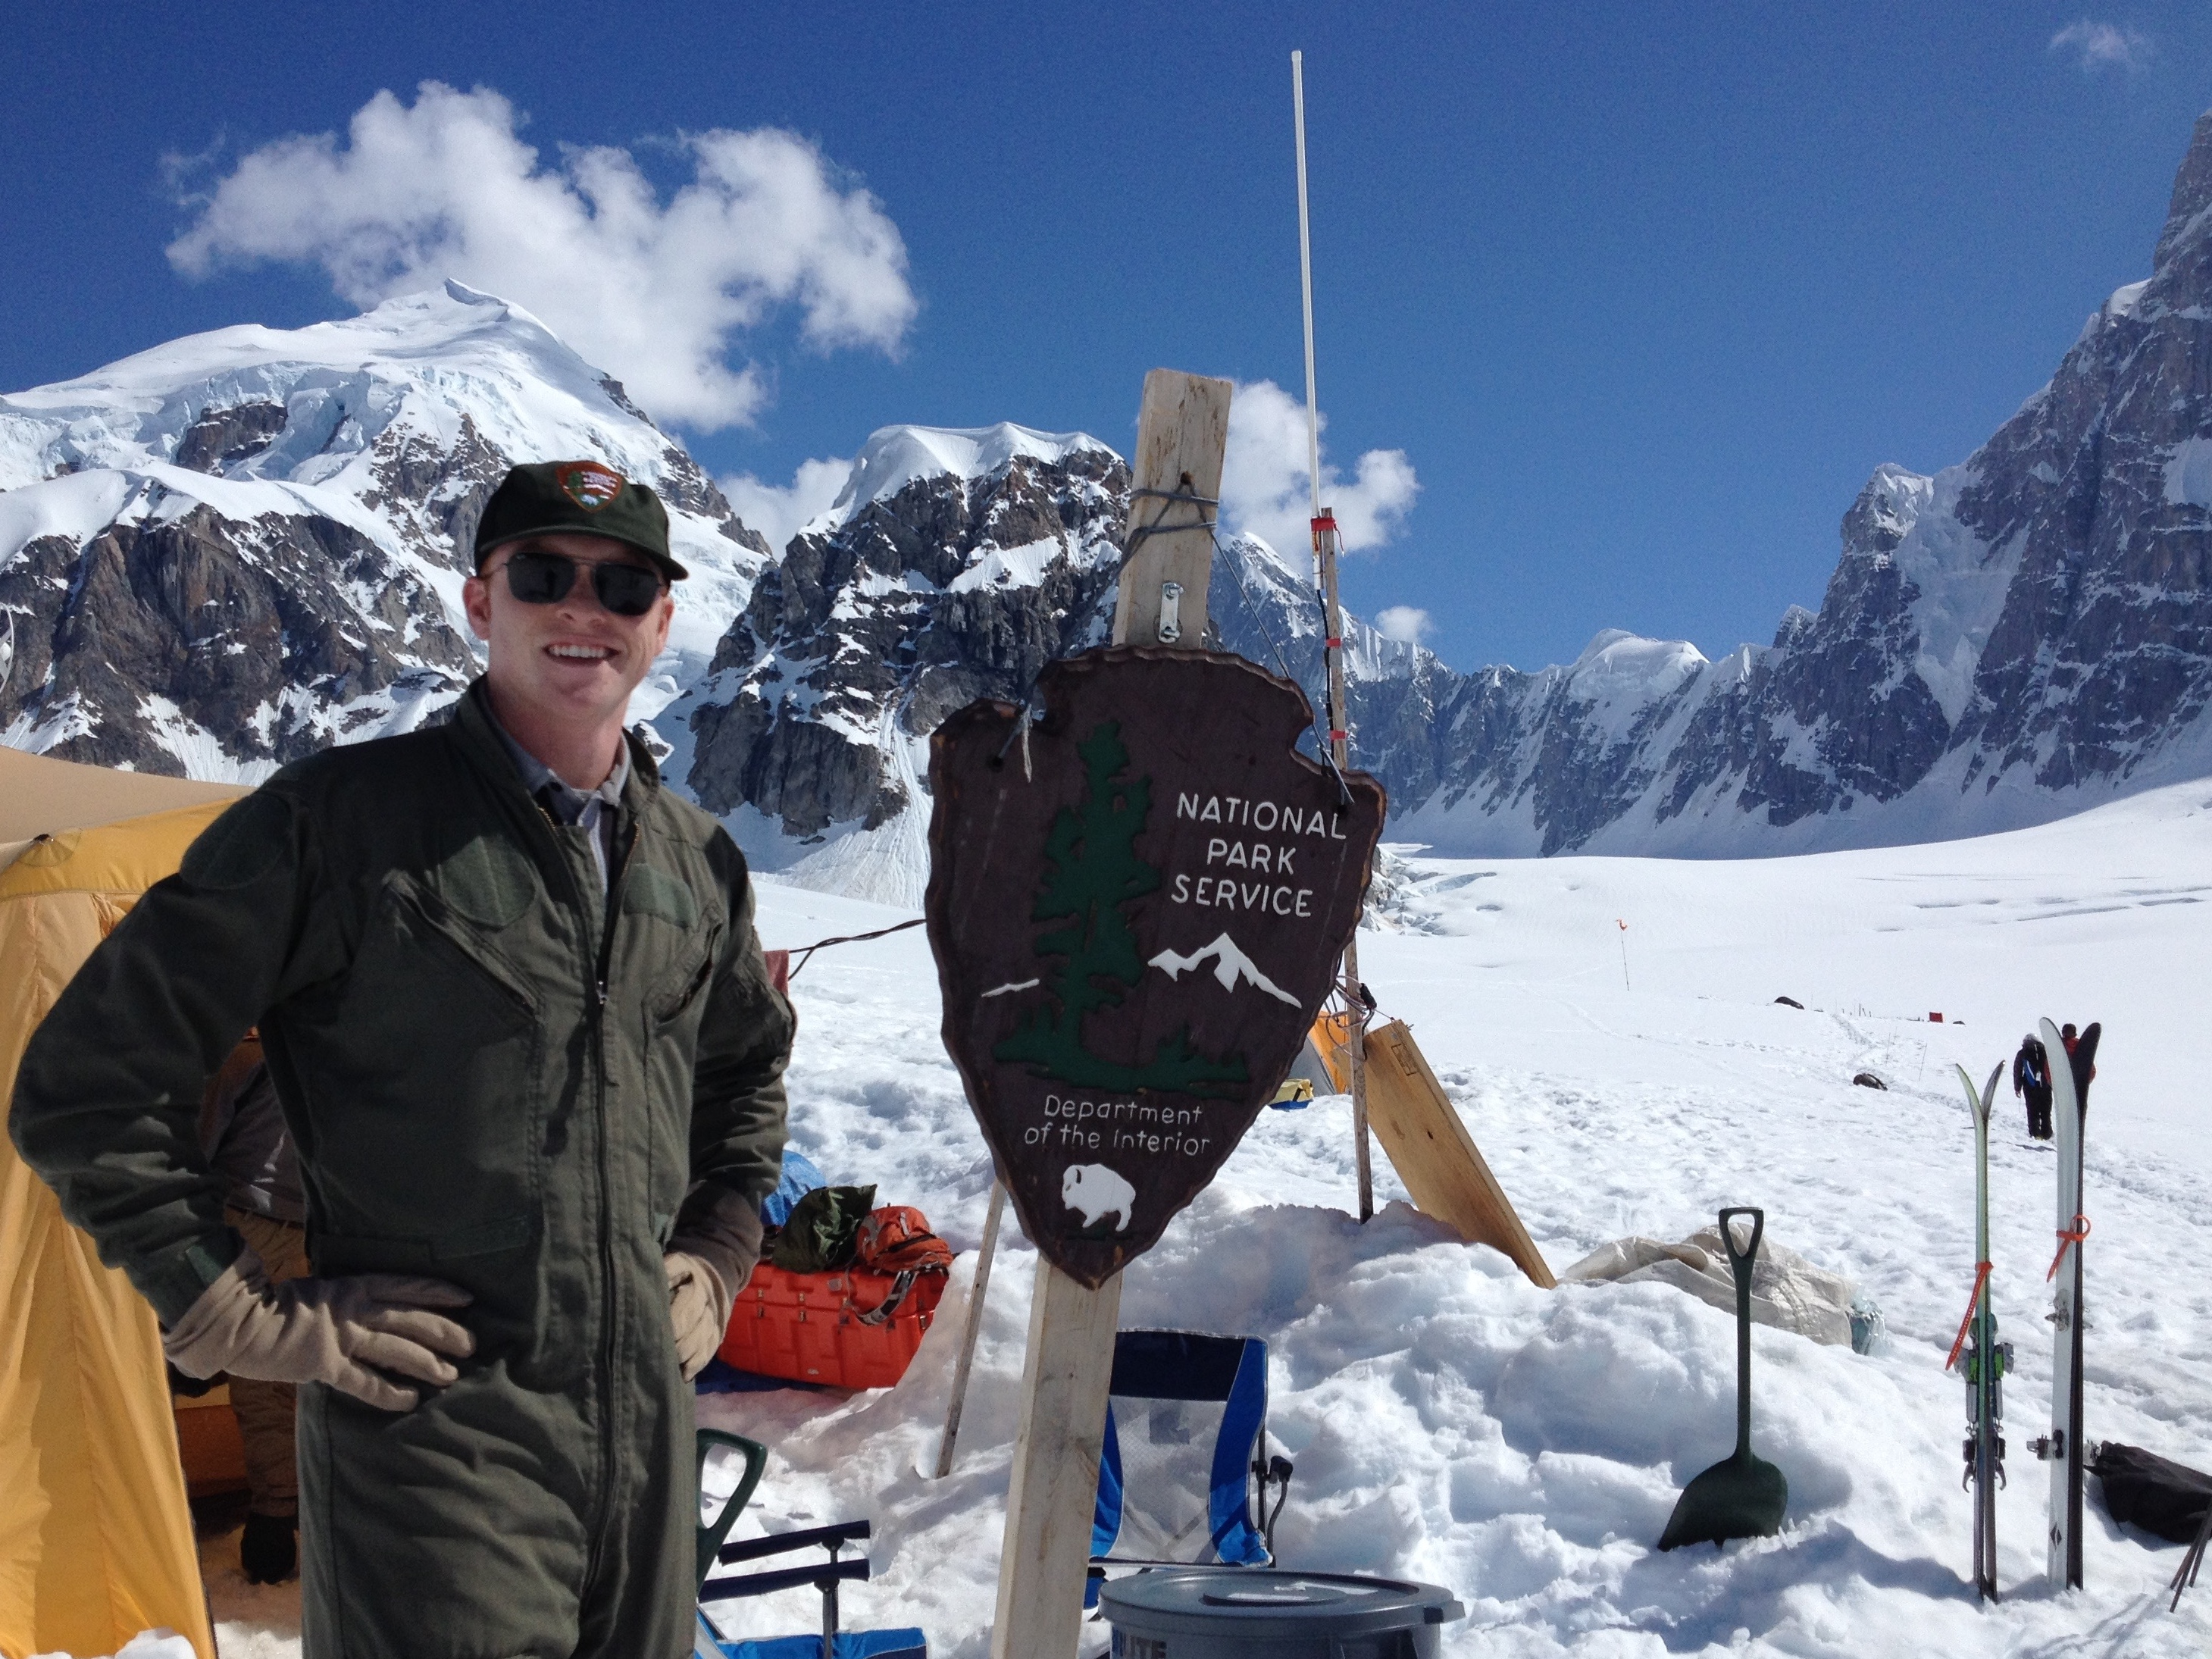 Heath on snow covered mountain next to sign for National Park Service Department of the Interior.